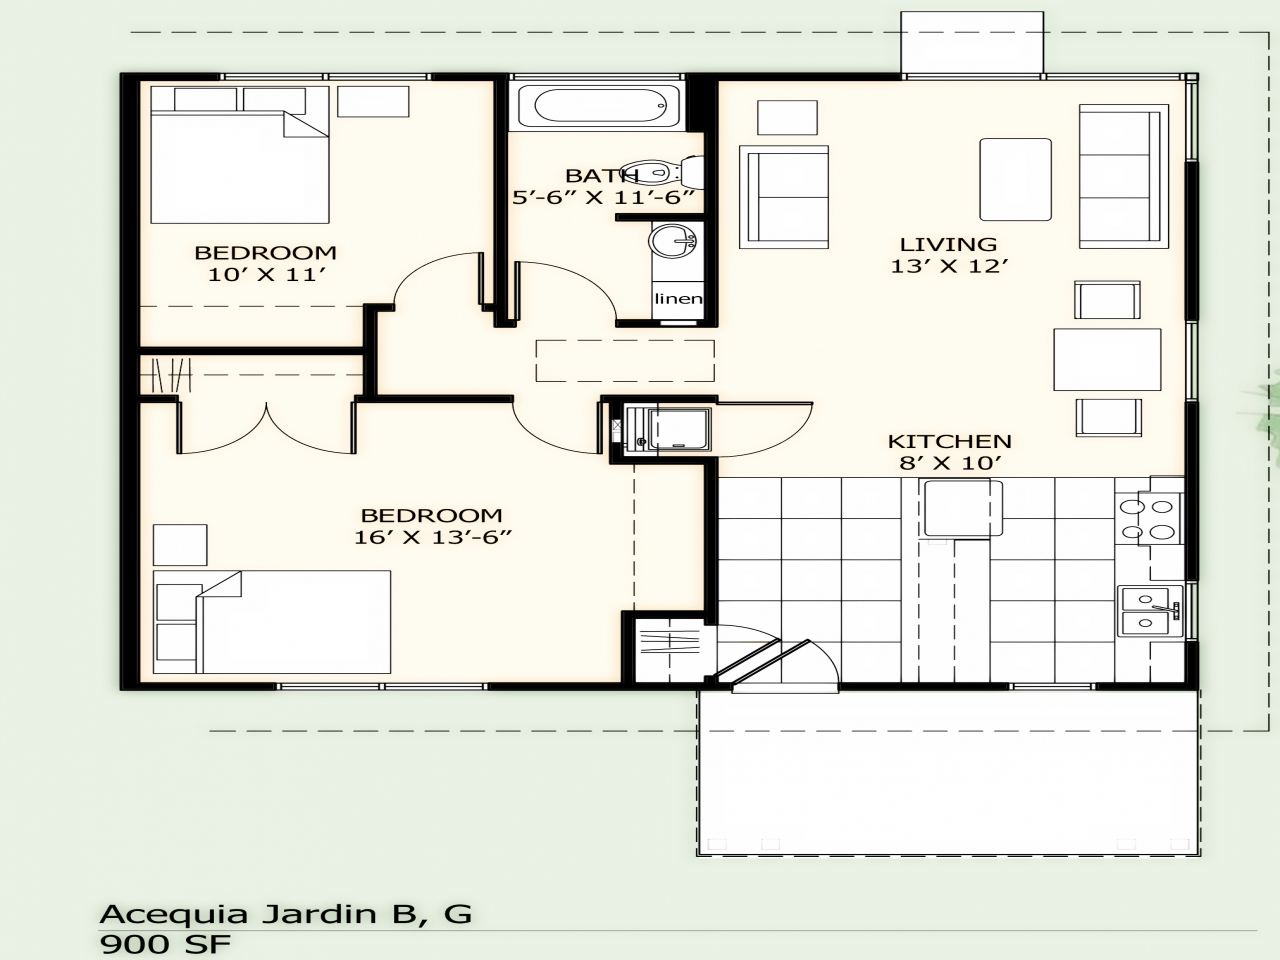 900 square foot house plans simple two bedroom 900 sq ft for Houde plans